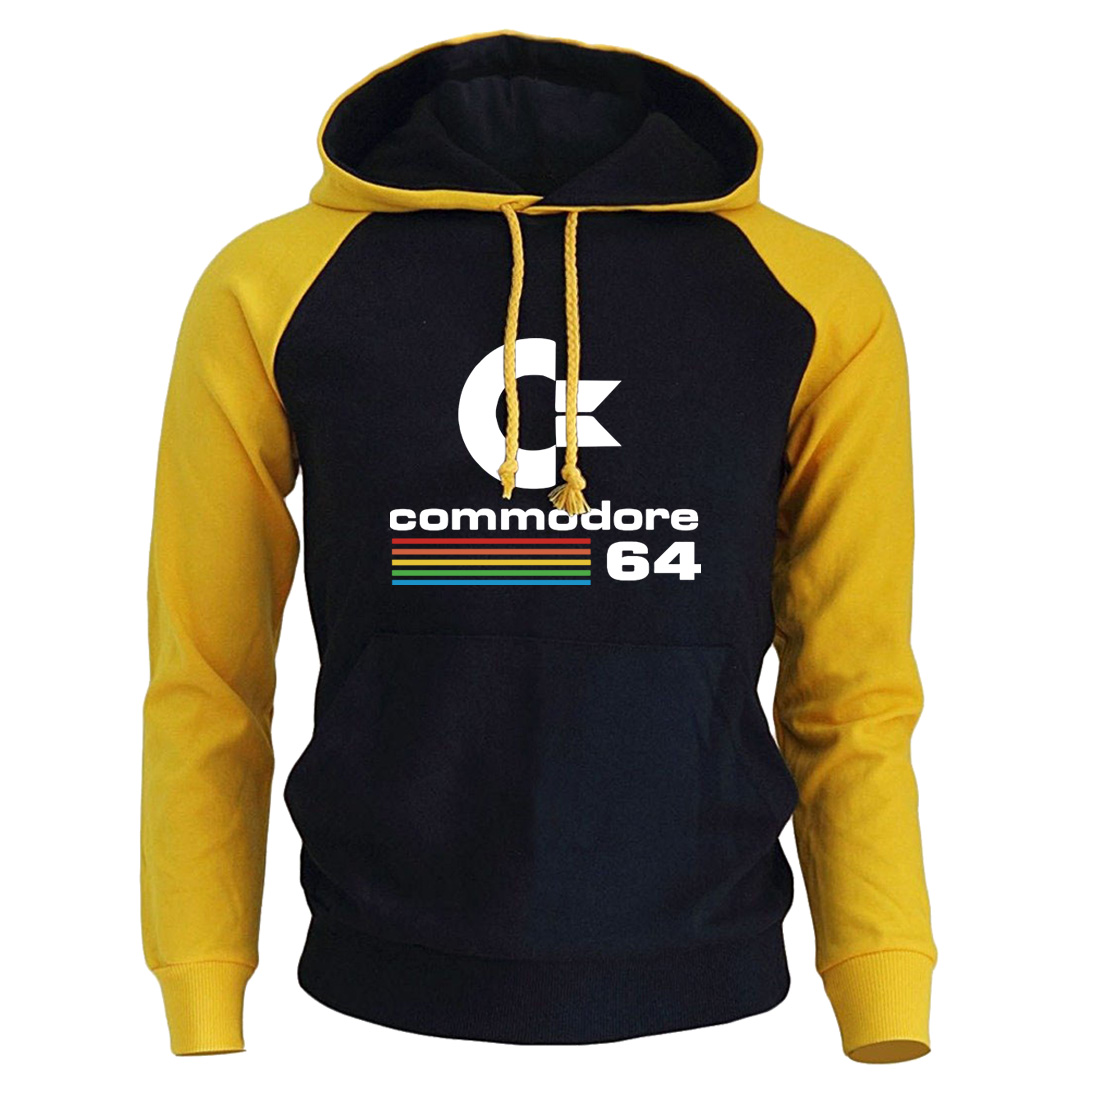 Commodore 64 Hoddies Men C64 SID Amiga Retro 8-bit Ultra Cool Design Mens Hooded Sweatshirts 2019 New Arrival Fashion Male Hoody